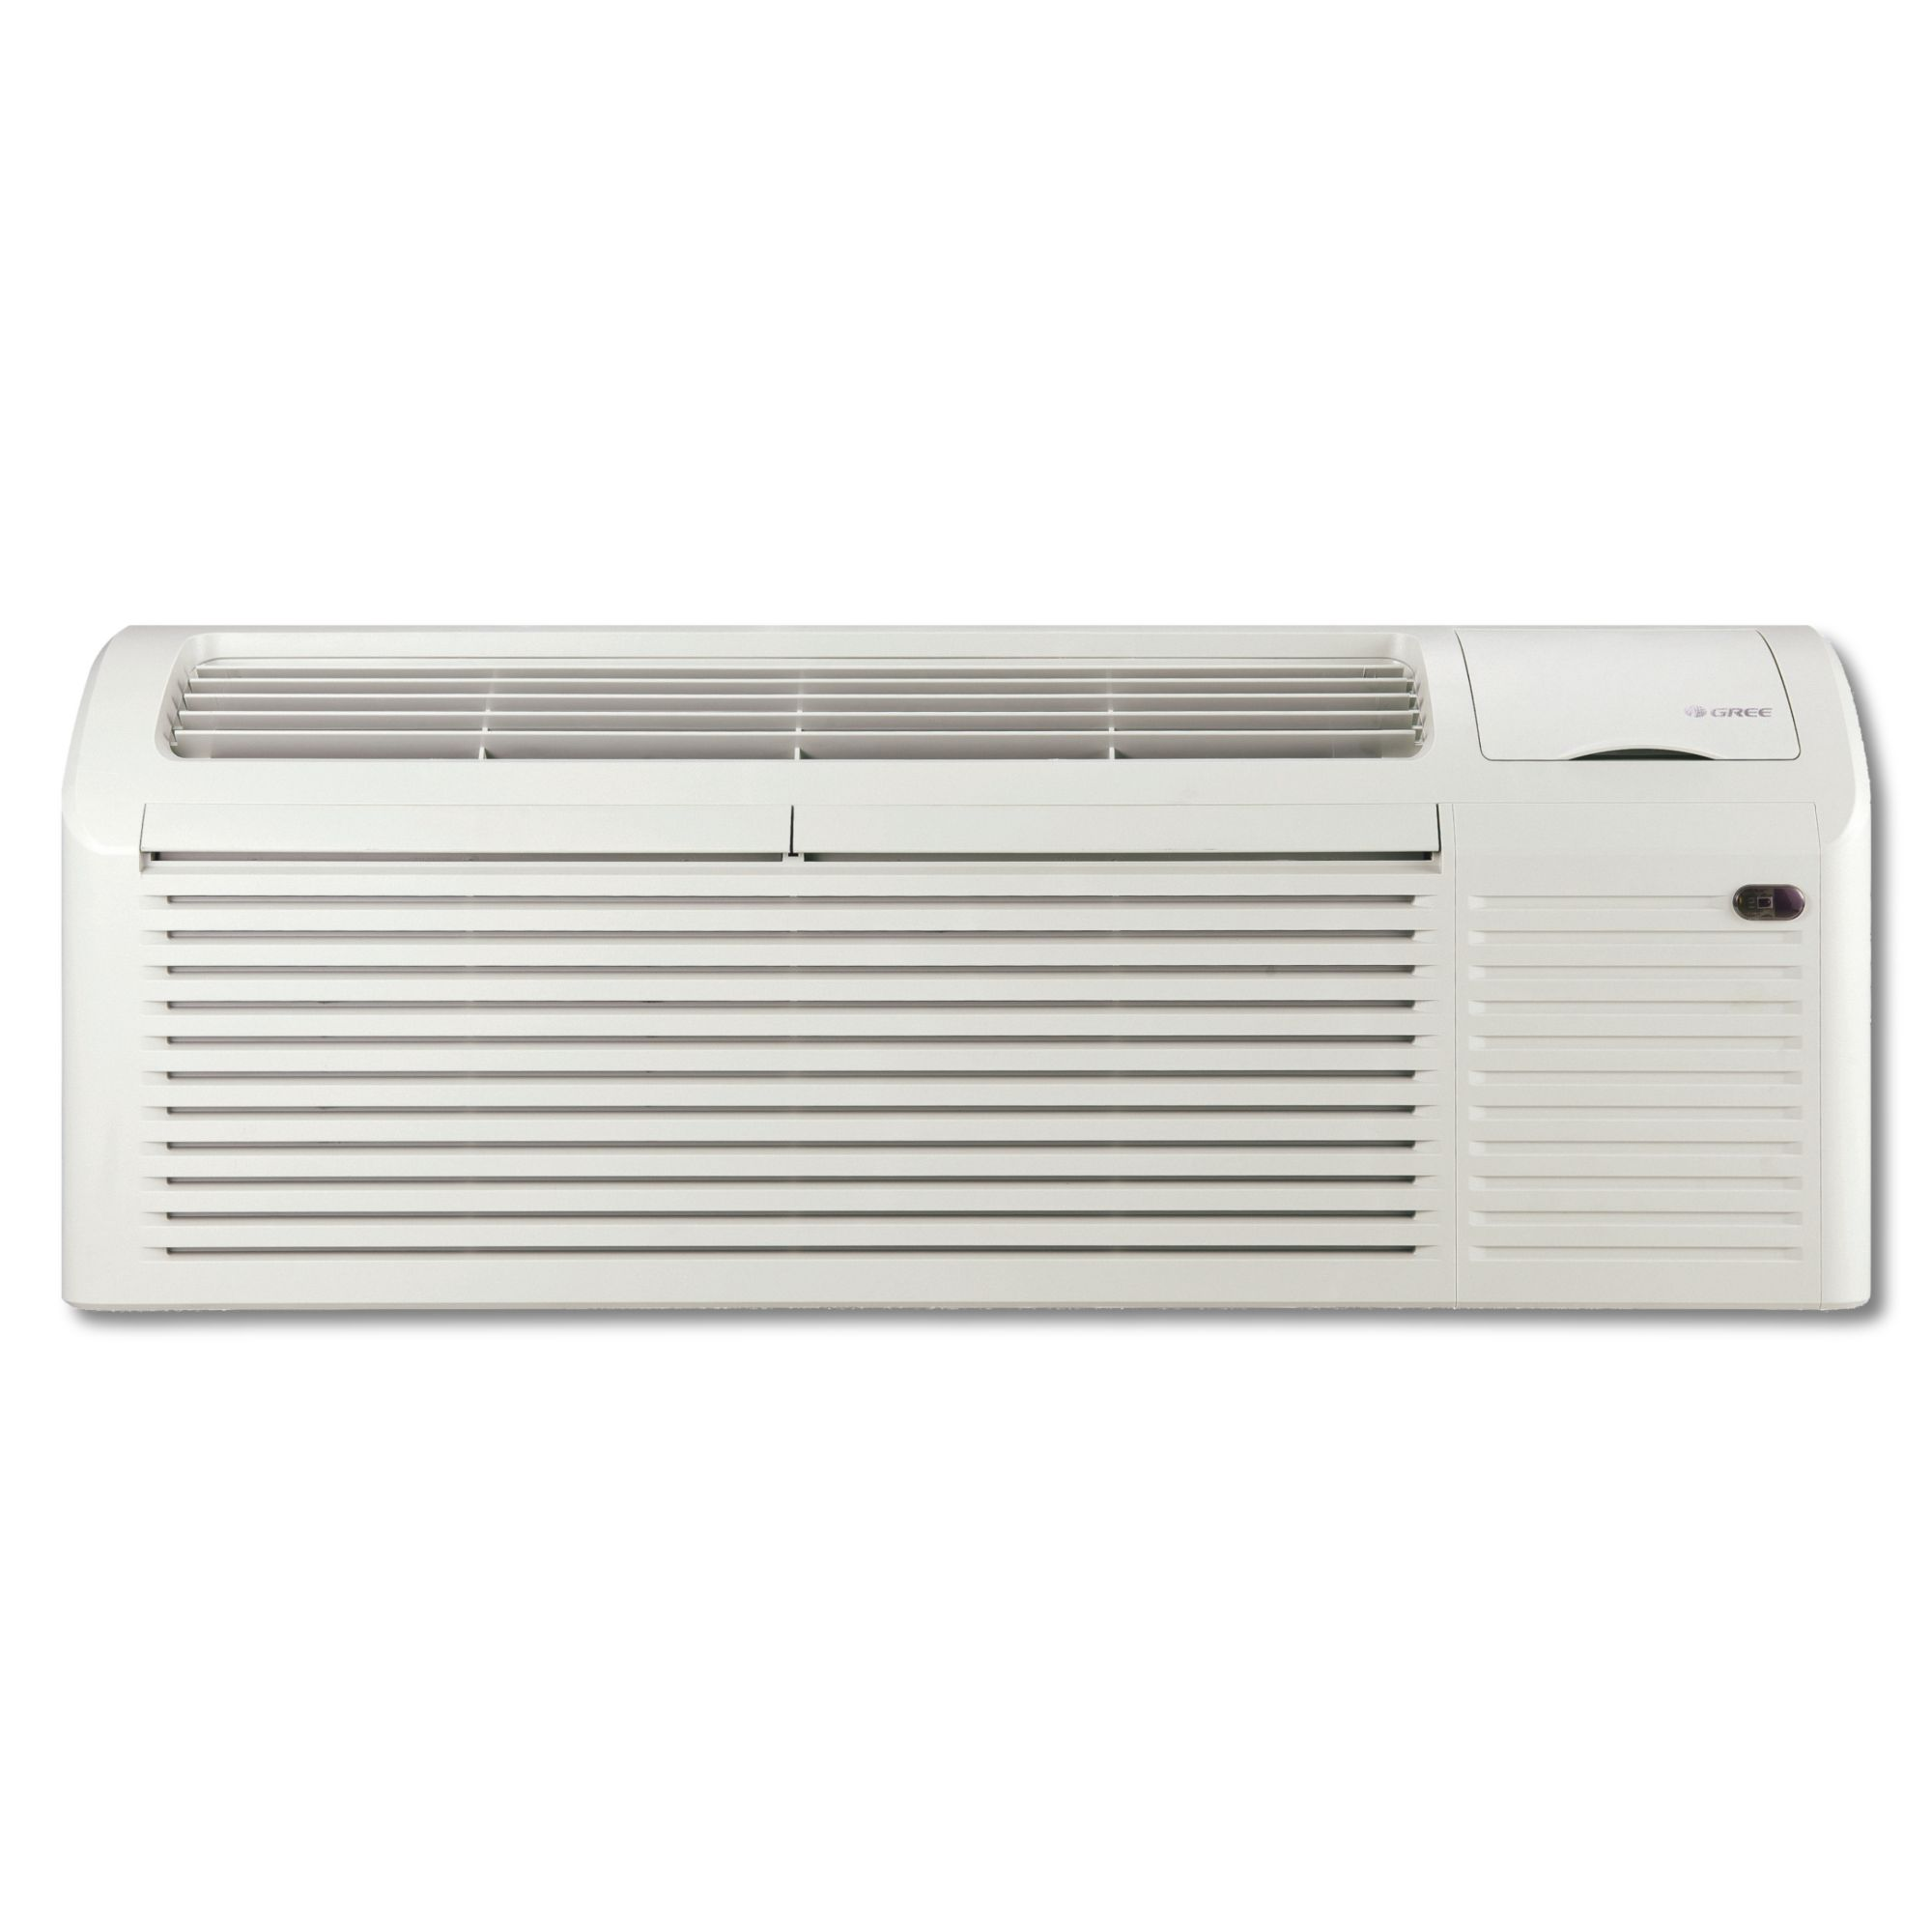 gree etac 15hp230v30b a gree etac 15hp230v30b a 14 500 btu 9 8 eer ptac heat pump 208 230v 5kw heat residential commercial use